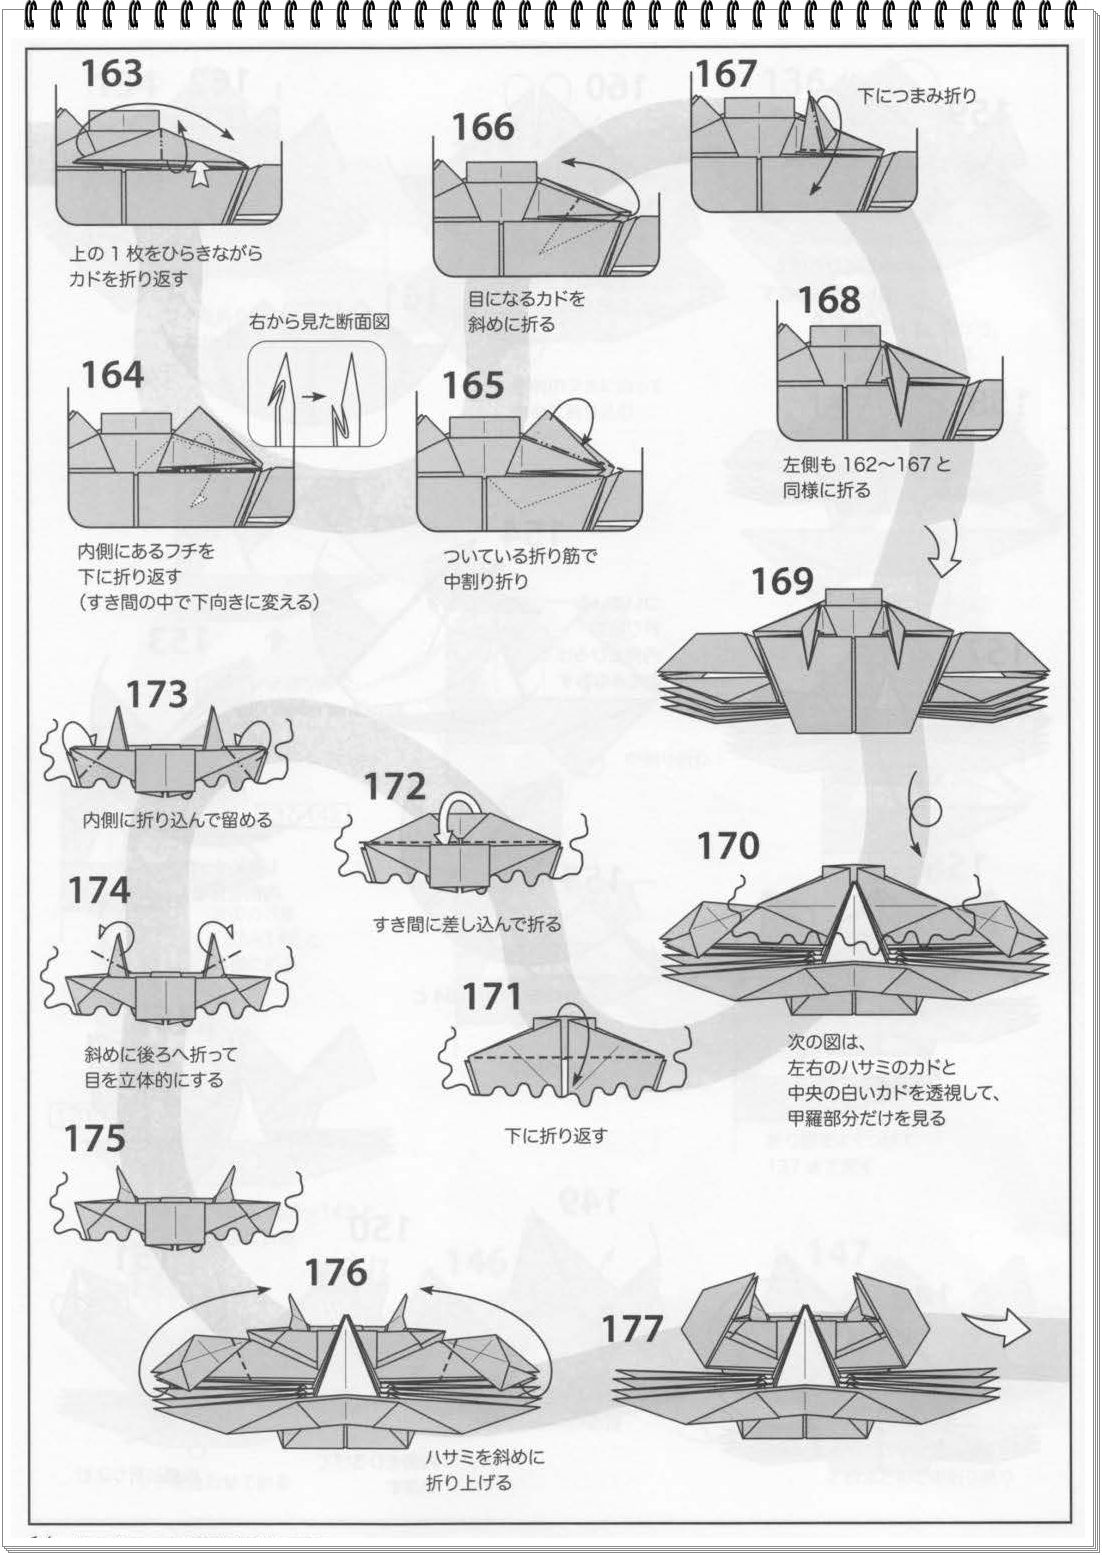 how to make origami crab ruby book origami shore crab hideo komatsu in 2020 book origami make crab how to